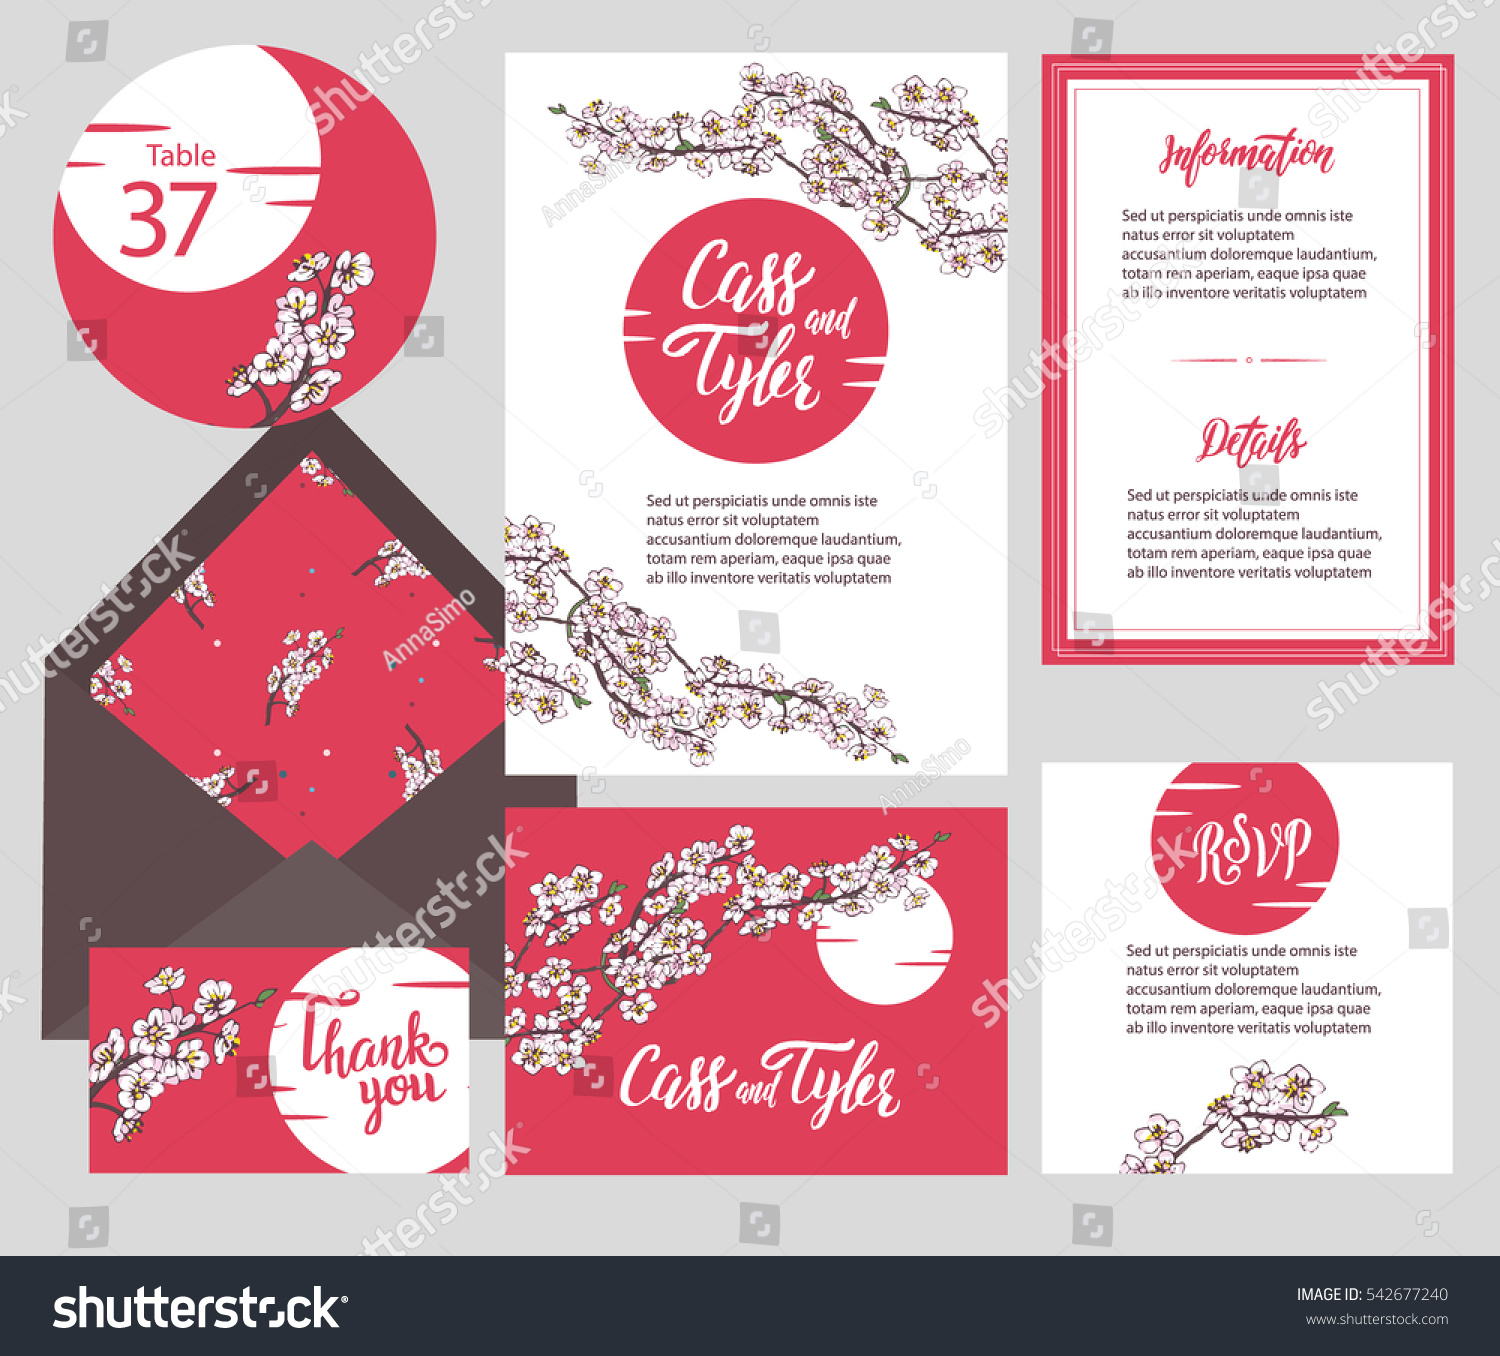 Set Templates Wedding Invitation Postcard Information เวกเตอร์สต็อก ...